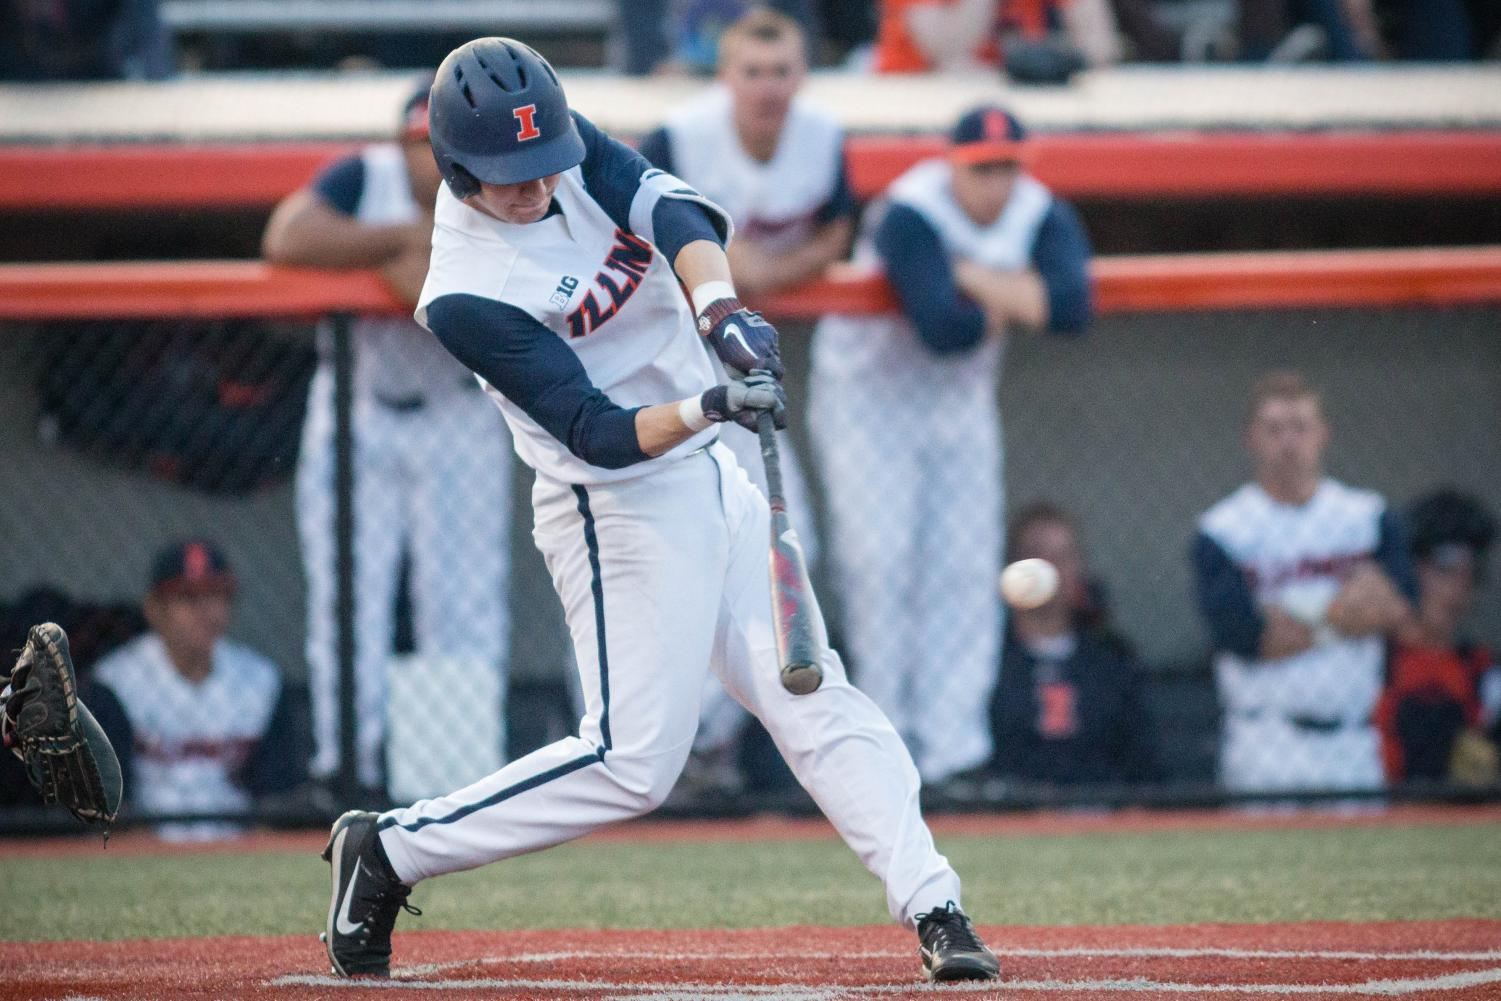 Illinois infielder Ben Troike hits the ball during the game against Rutgers at Illinois Field on Friday. The Illini won 13-12.